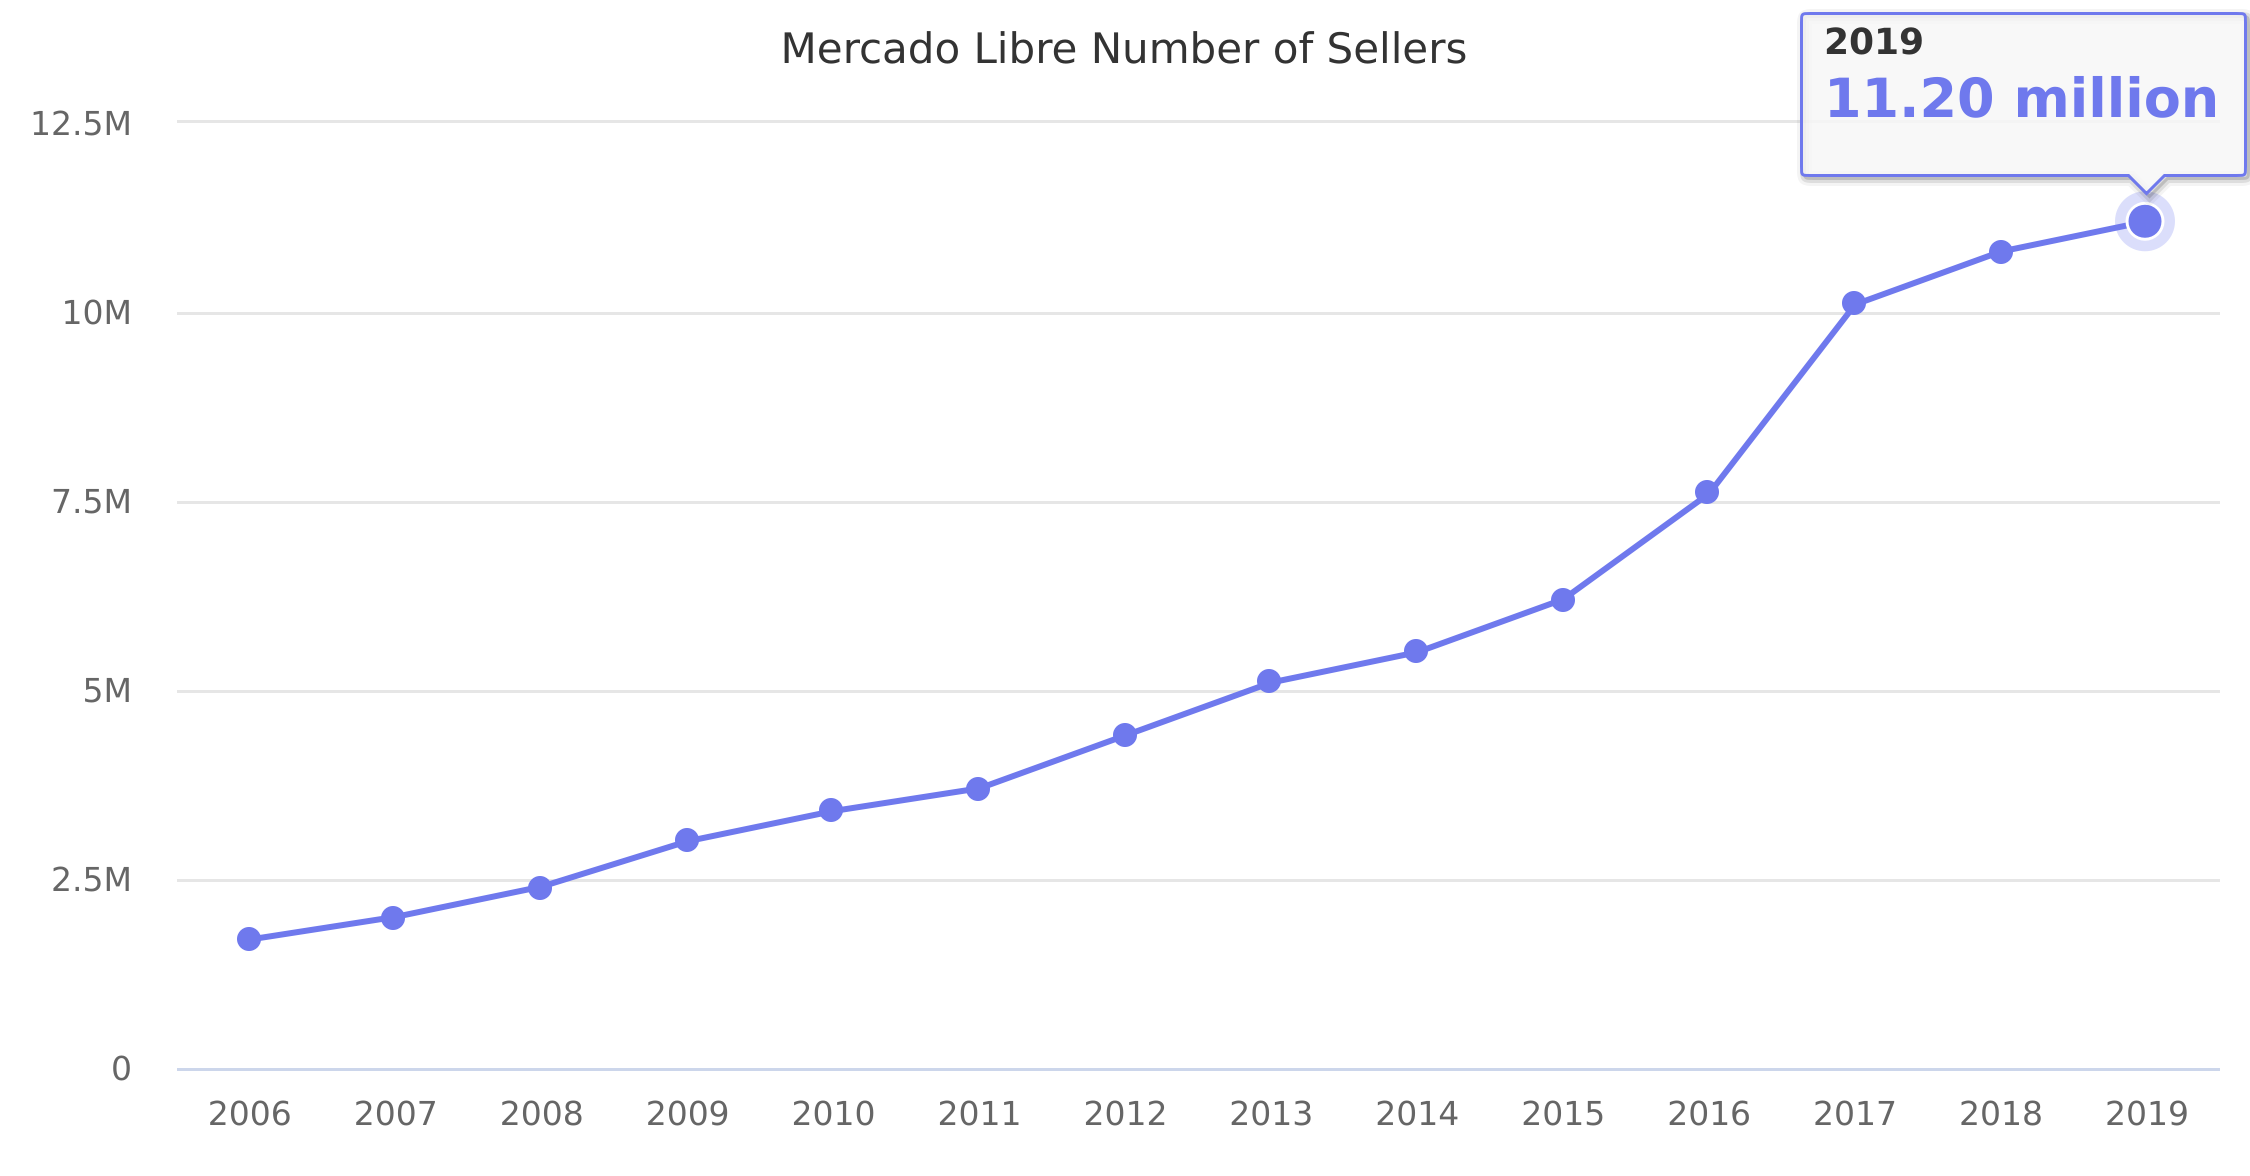 Mercado Libre Number of Sellers 2006-2017